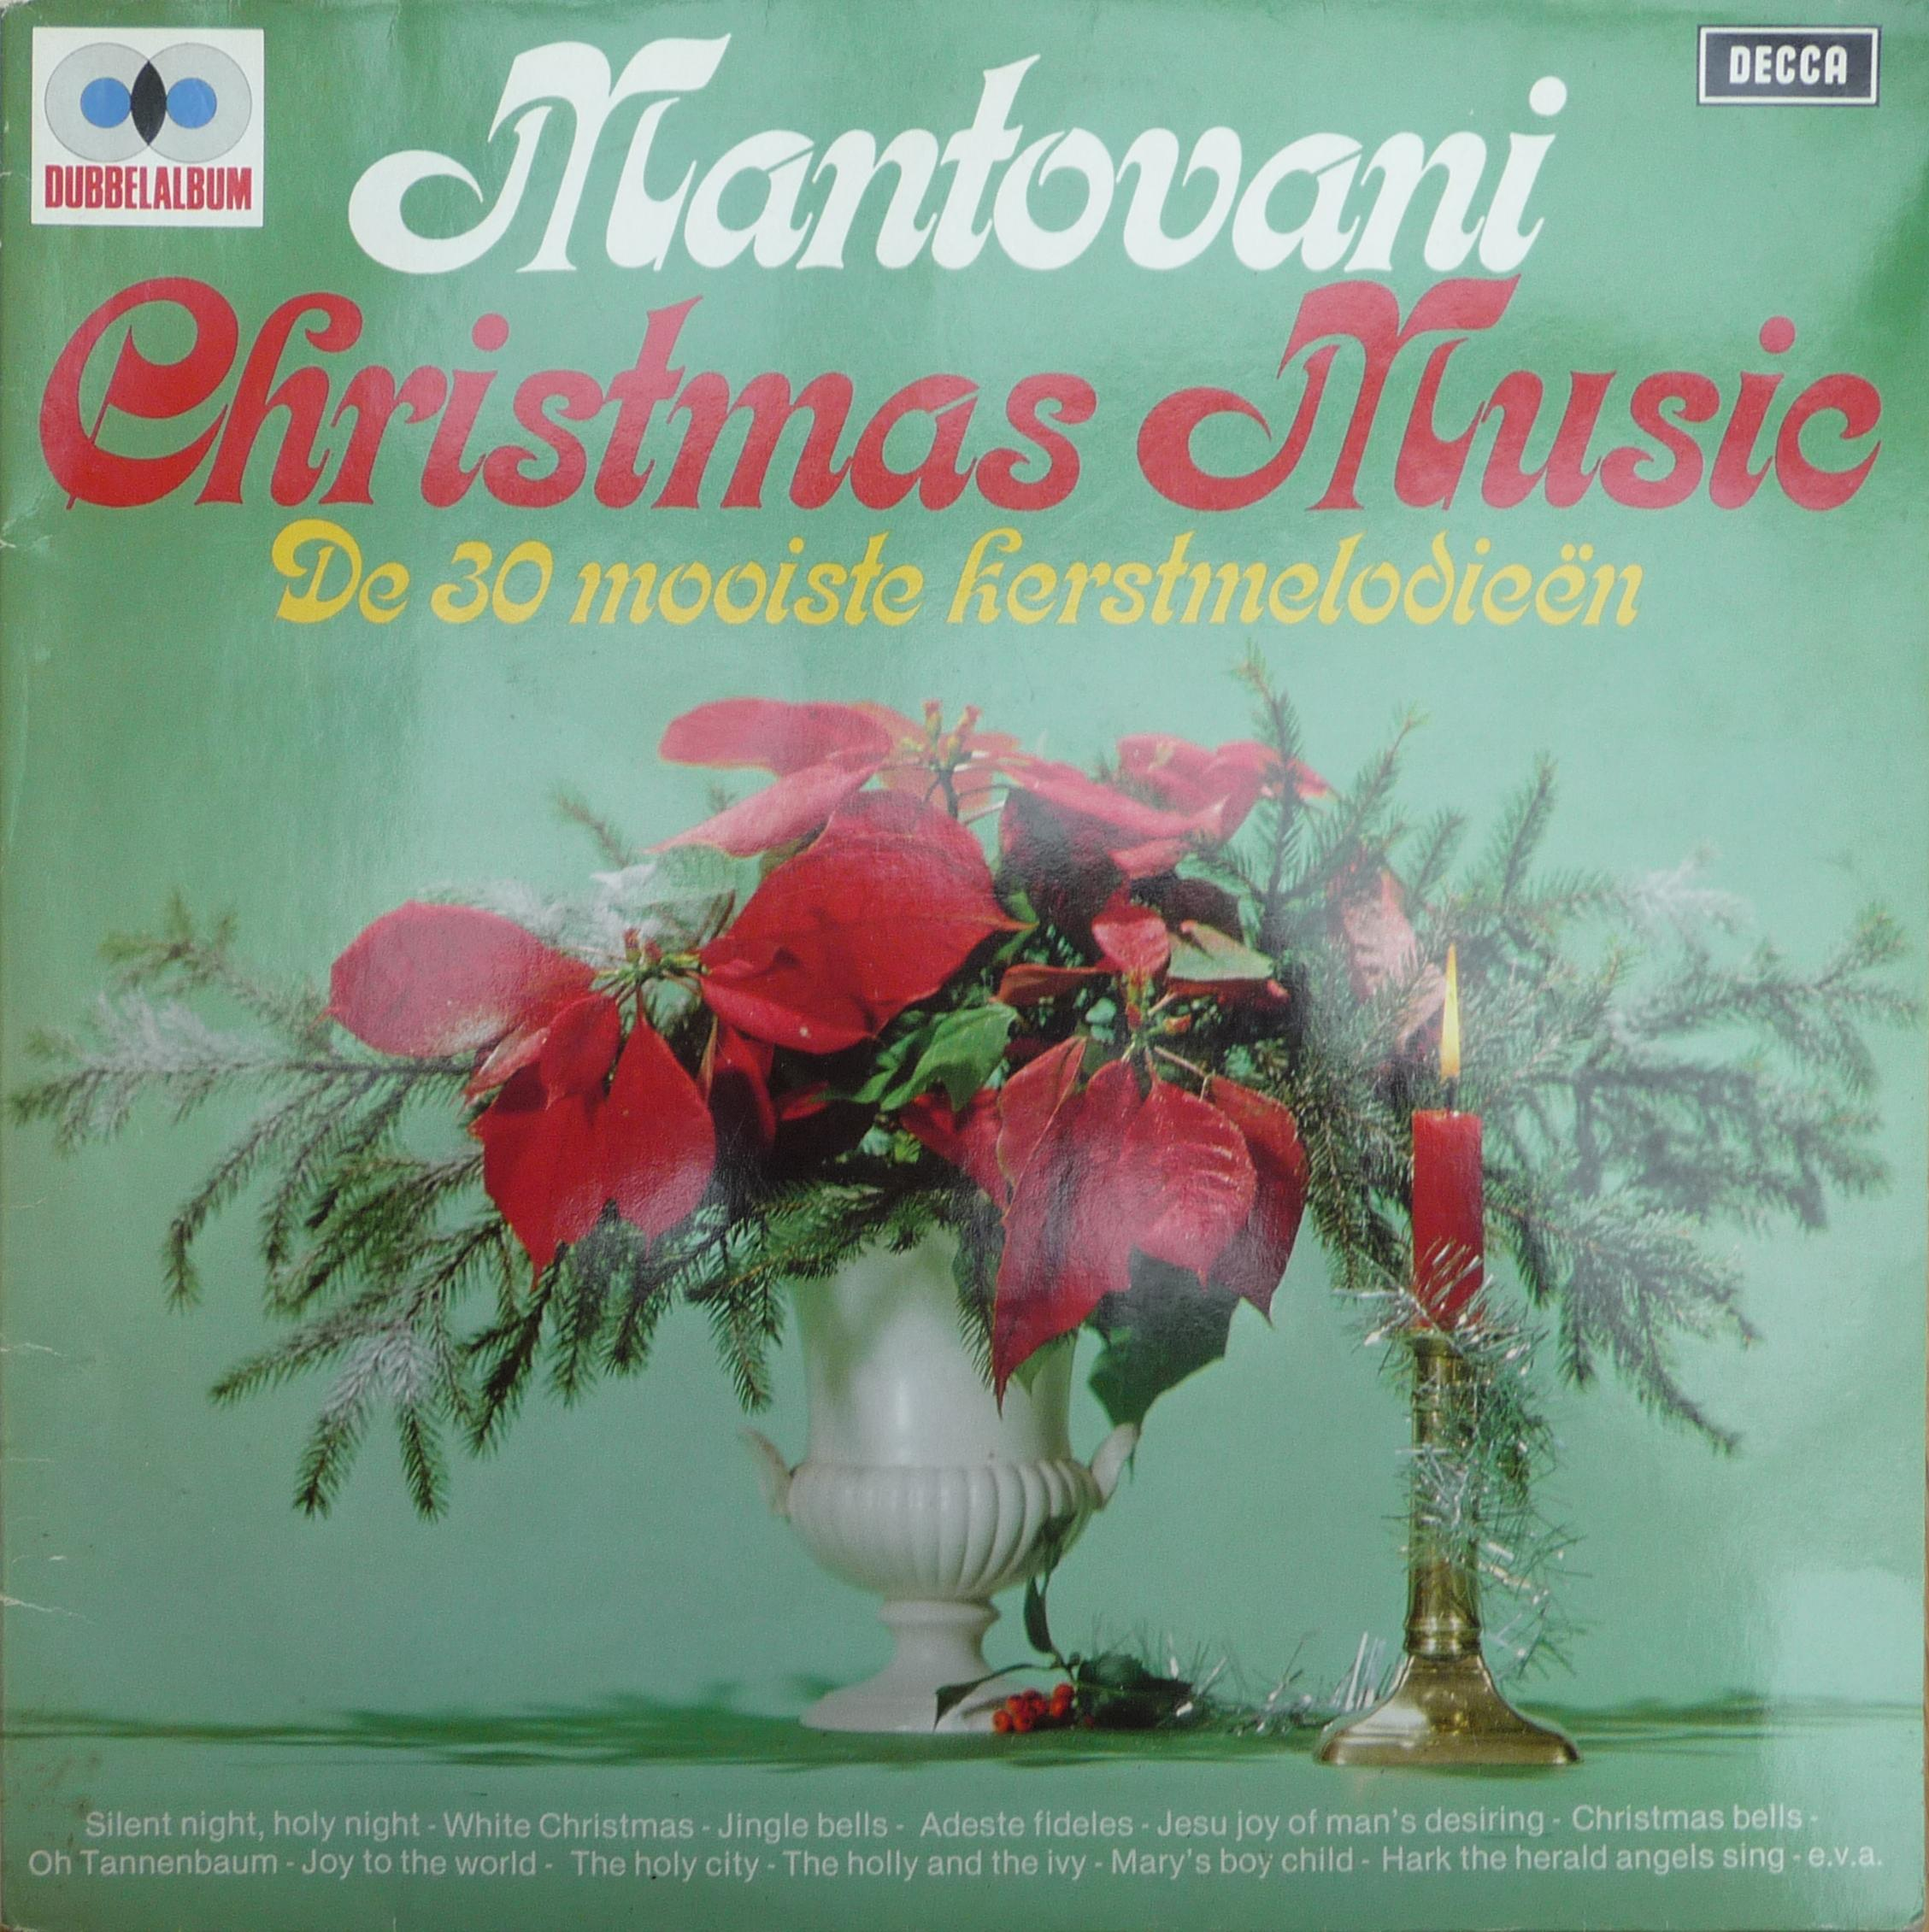 Angel From Holly's World mantovani - christmas music (1964). easy listening